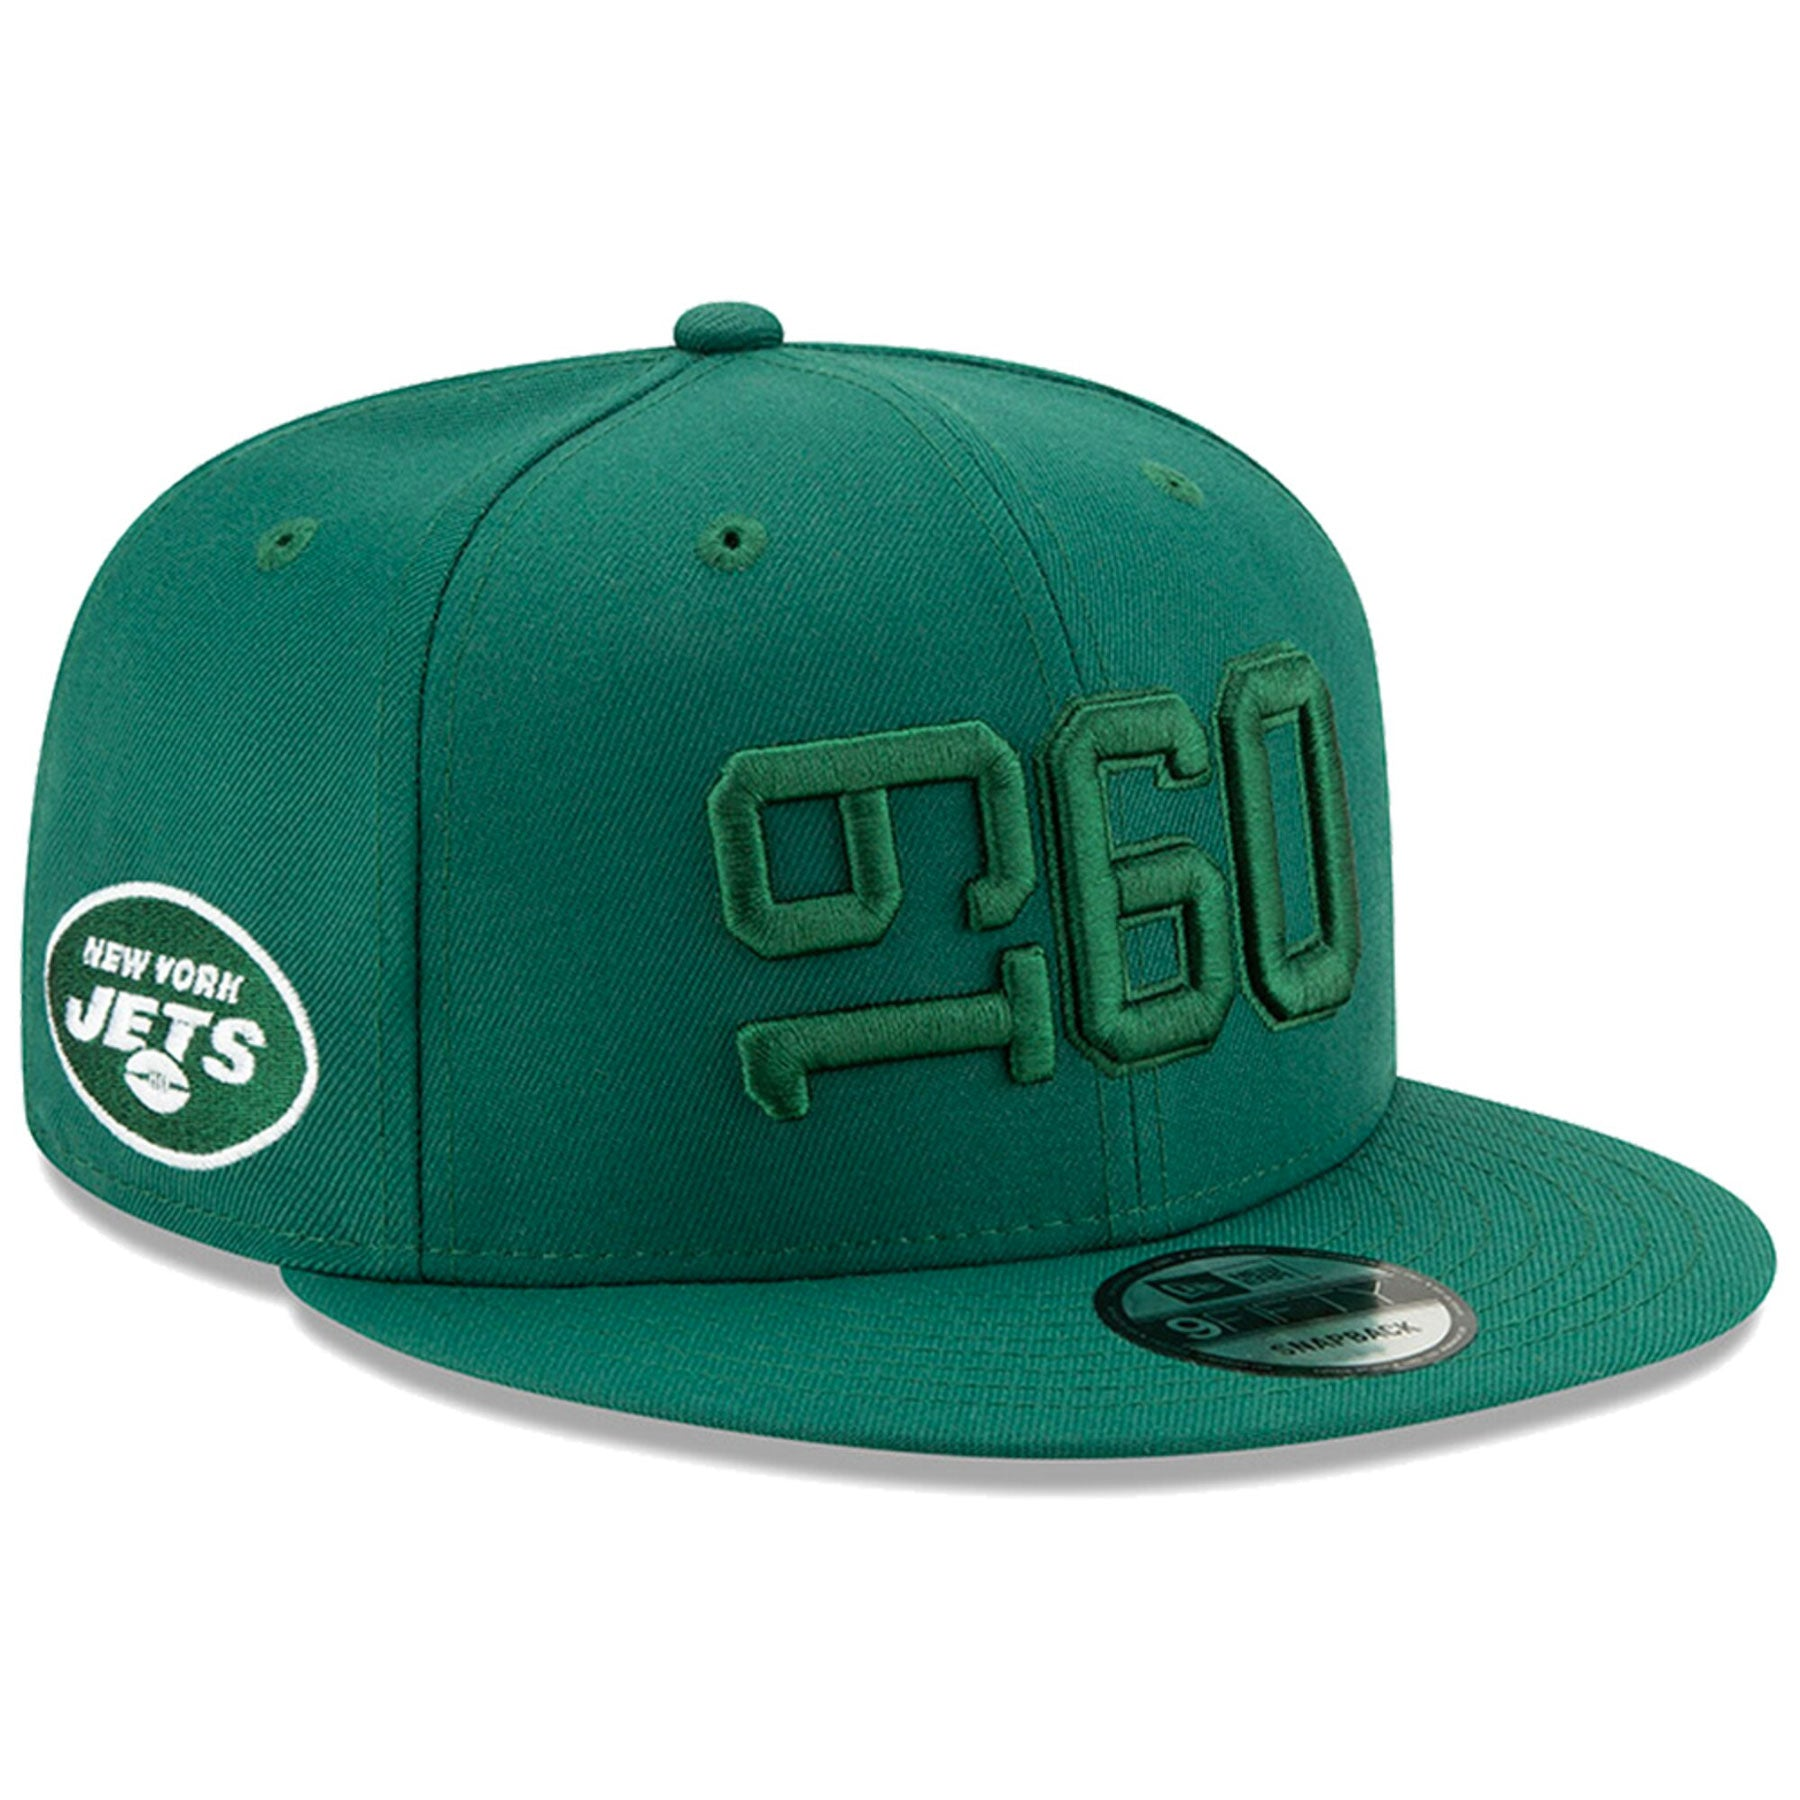 half off 96312 adc2f New York Jets New Era 2019 NFL On Field Sideline Color Rush 9FIFTY  Adjustable Green Snapback Hat